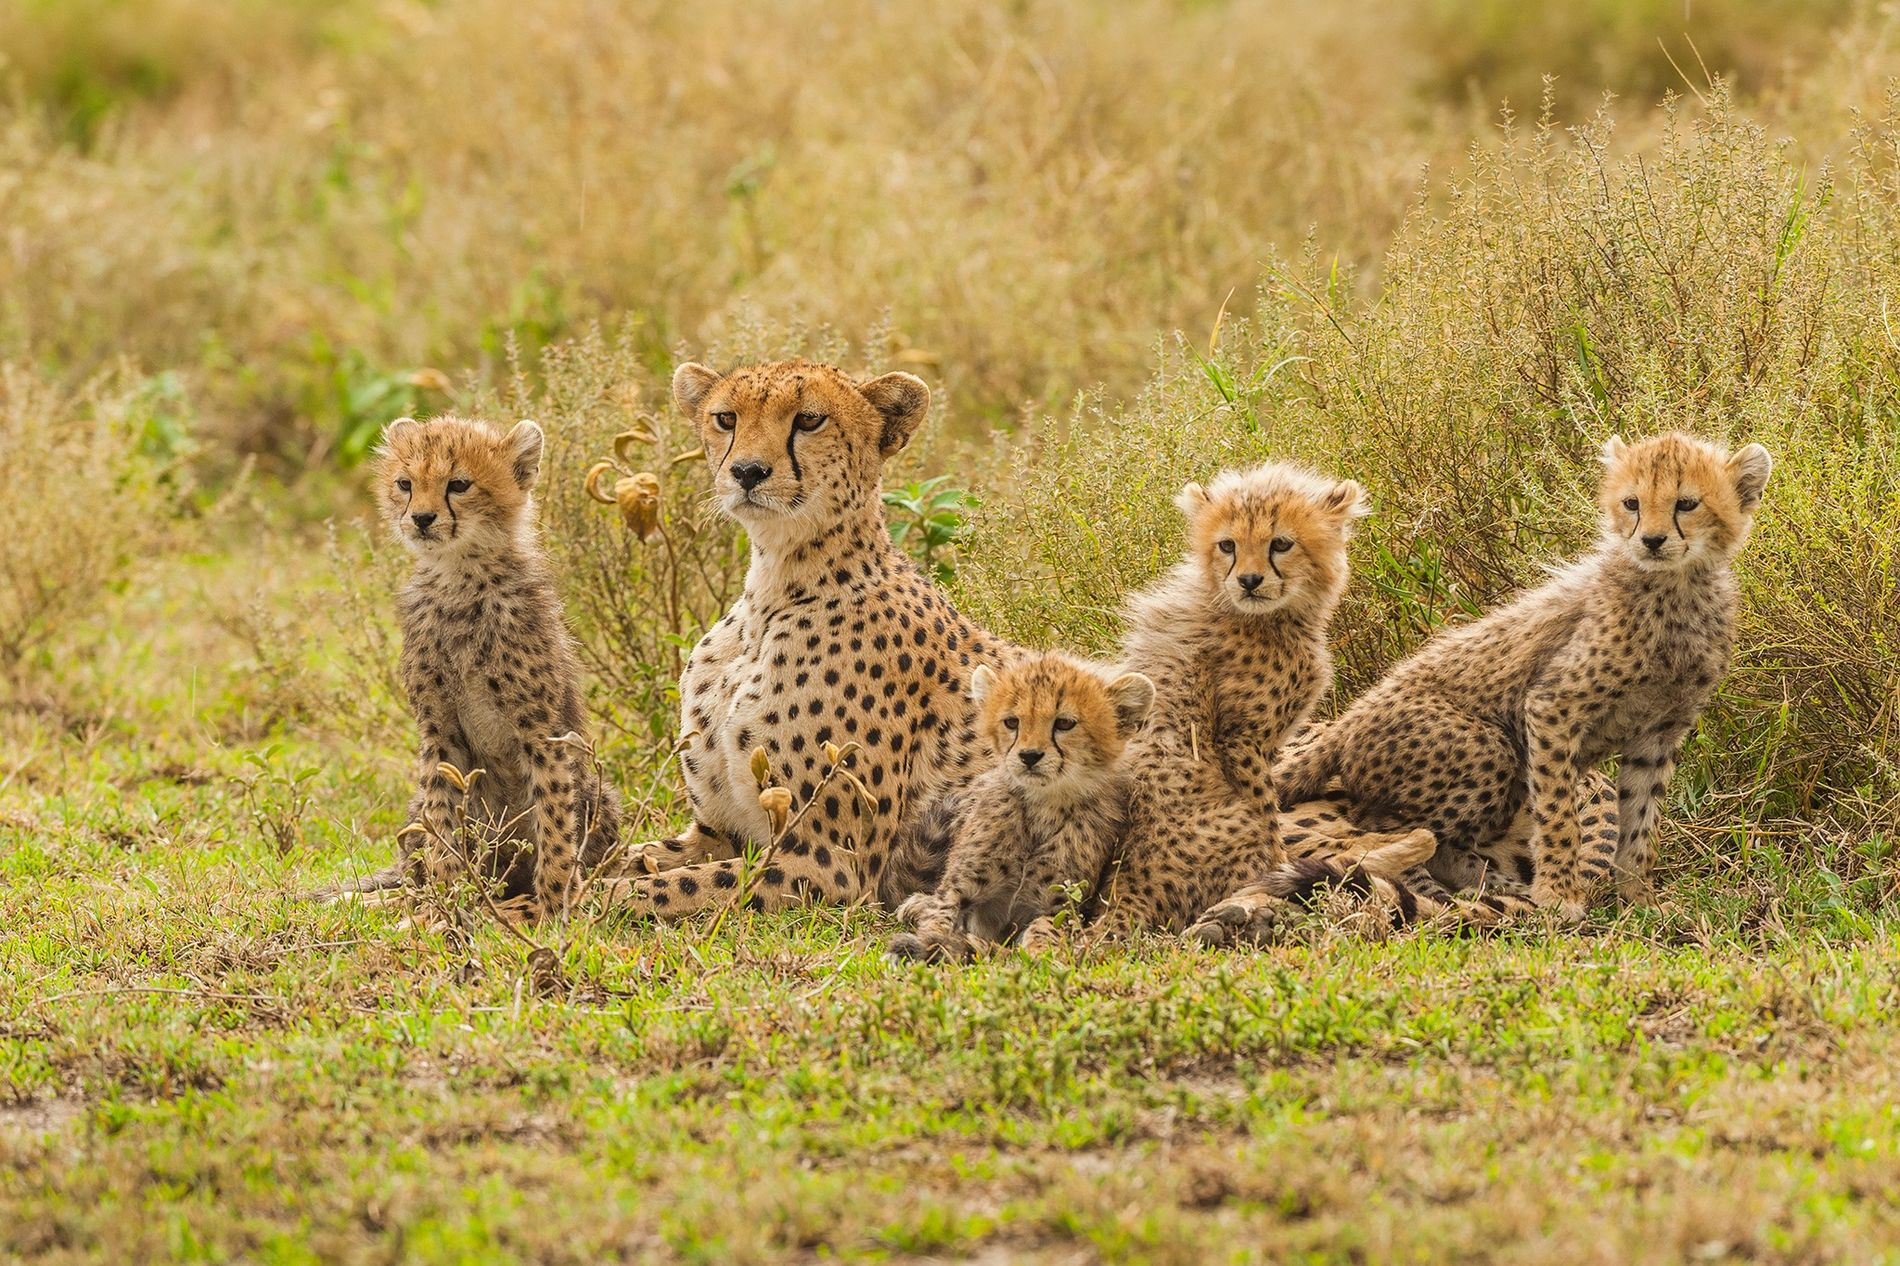 The fightback against the illegal cheetah trade